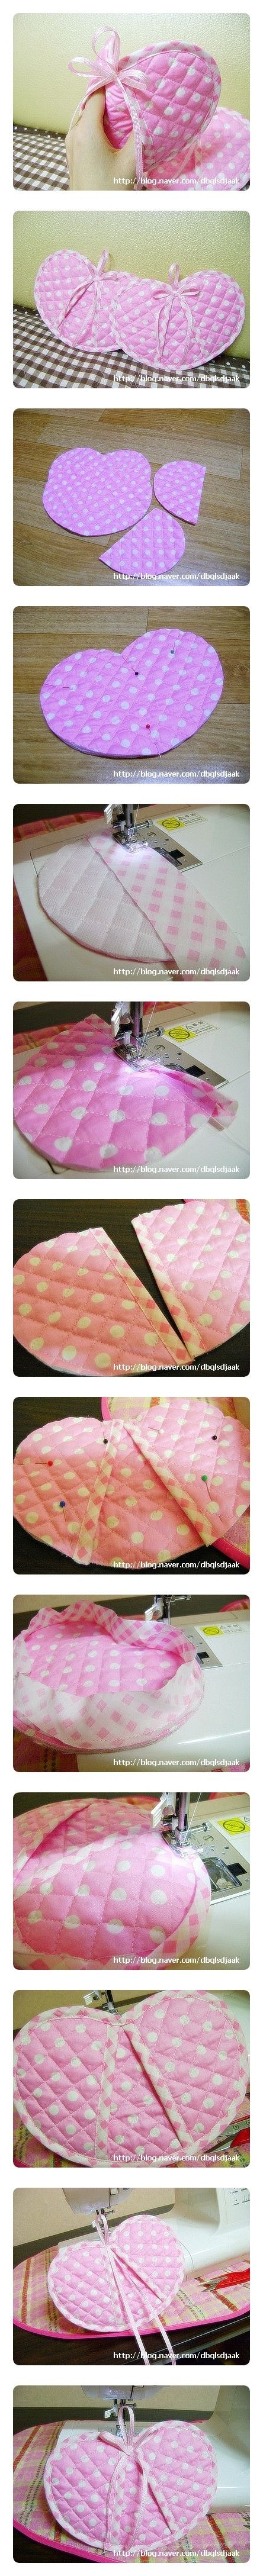 Cute Heart-shaped Pot Holders. Every girl should have a nice set of pot holders. Why not make your own?